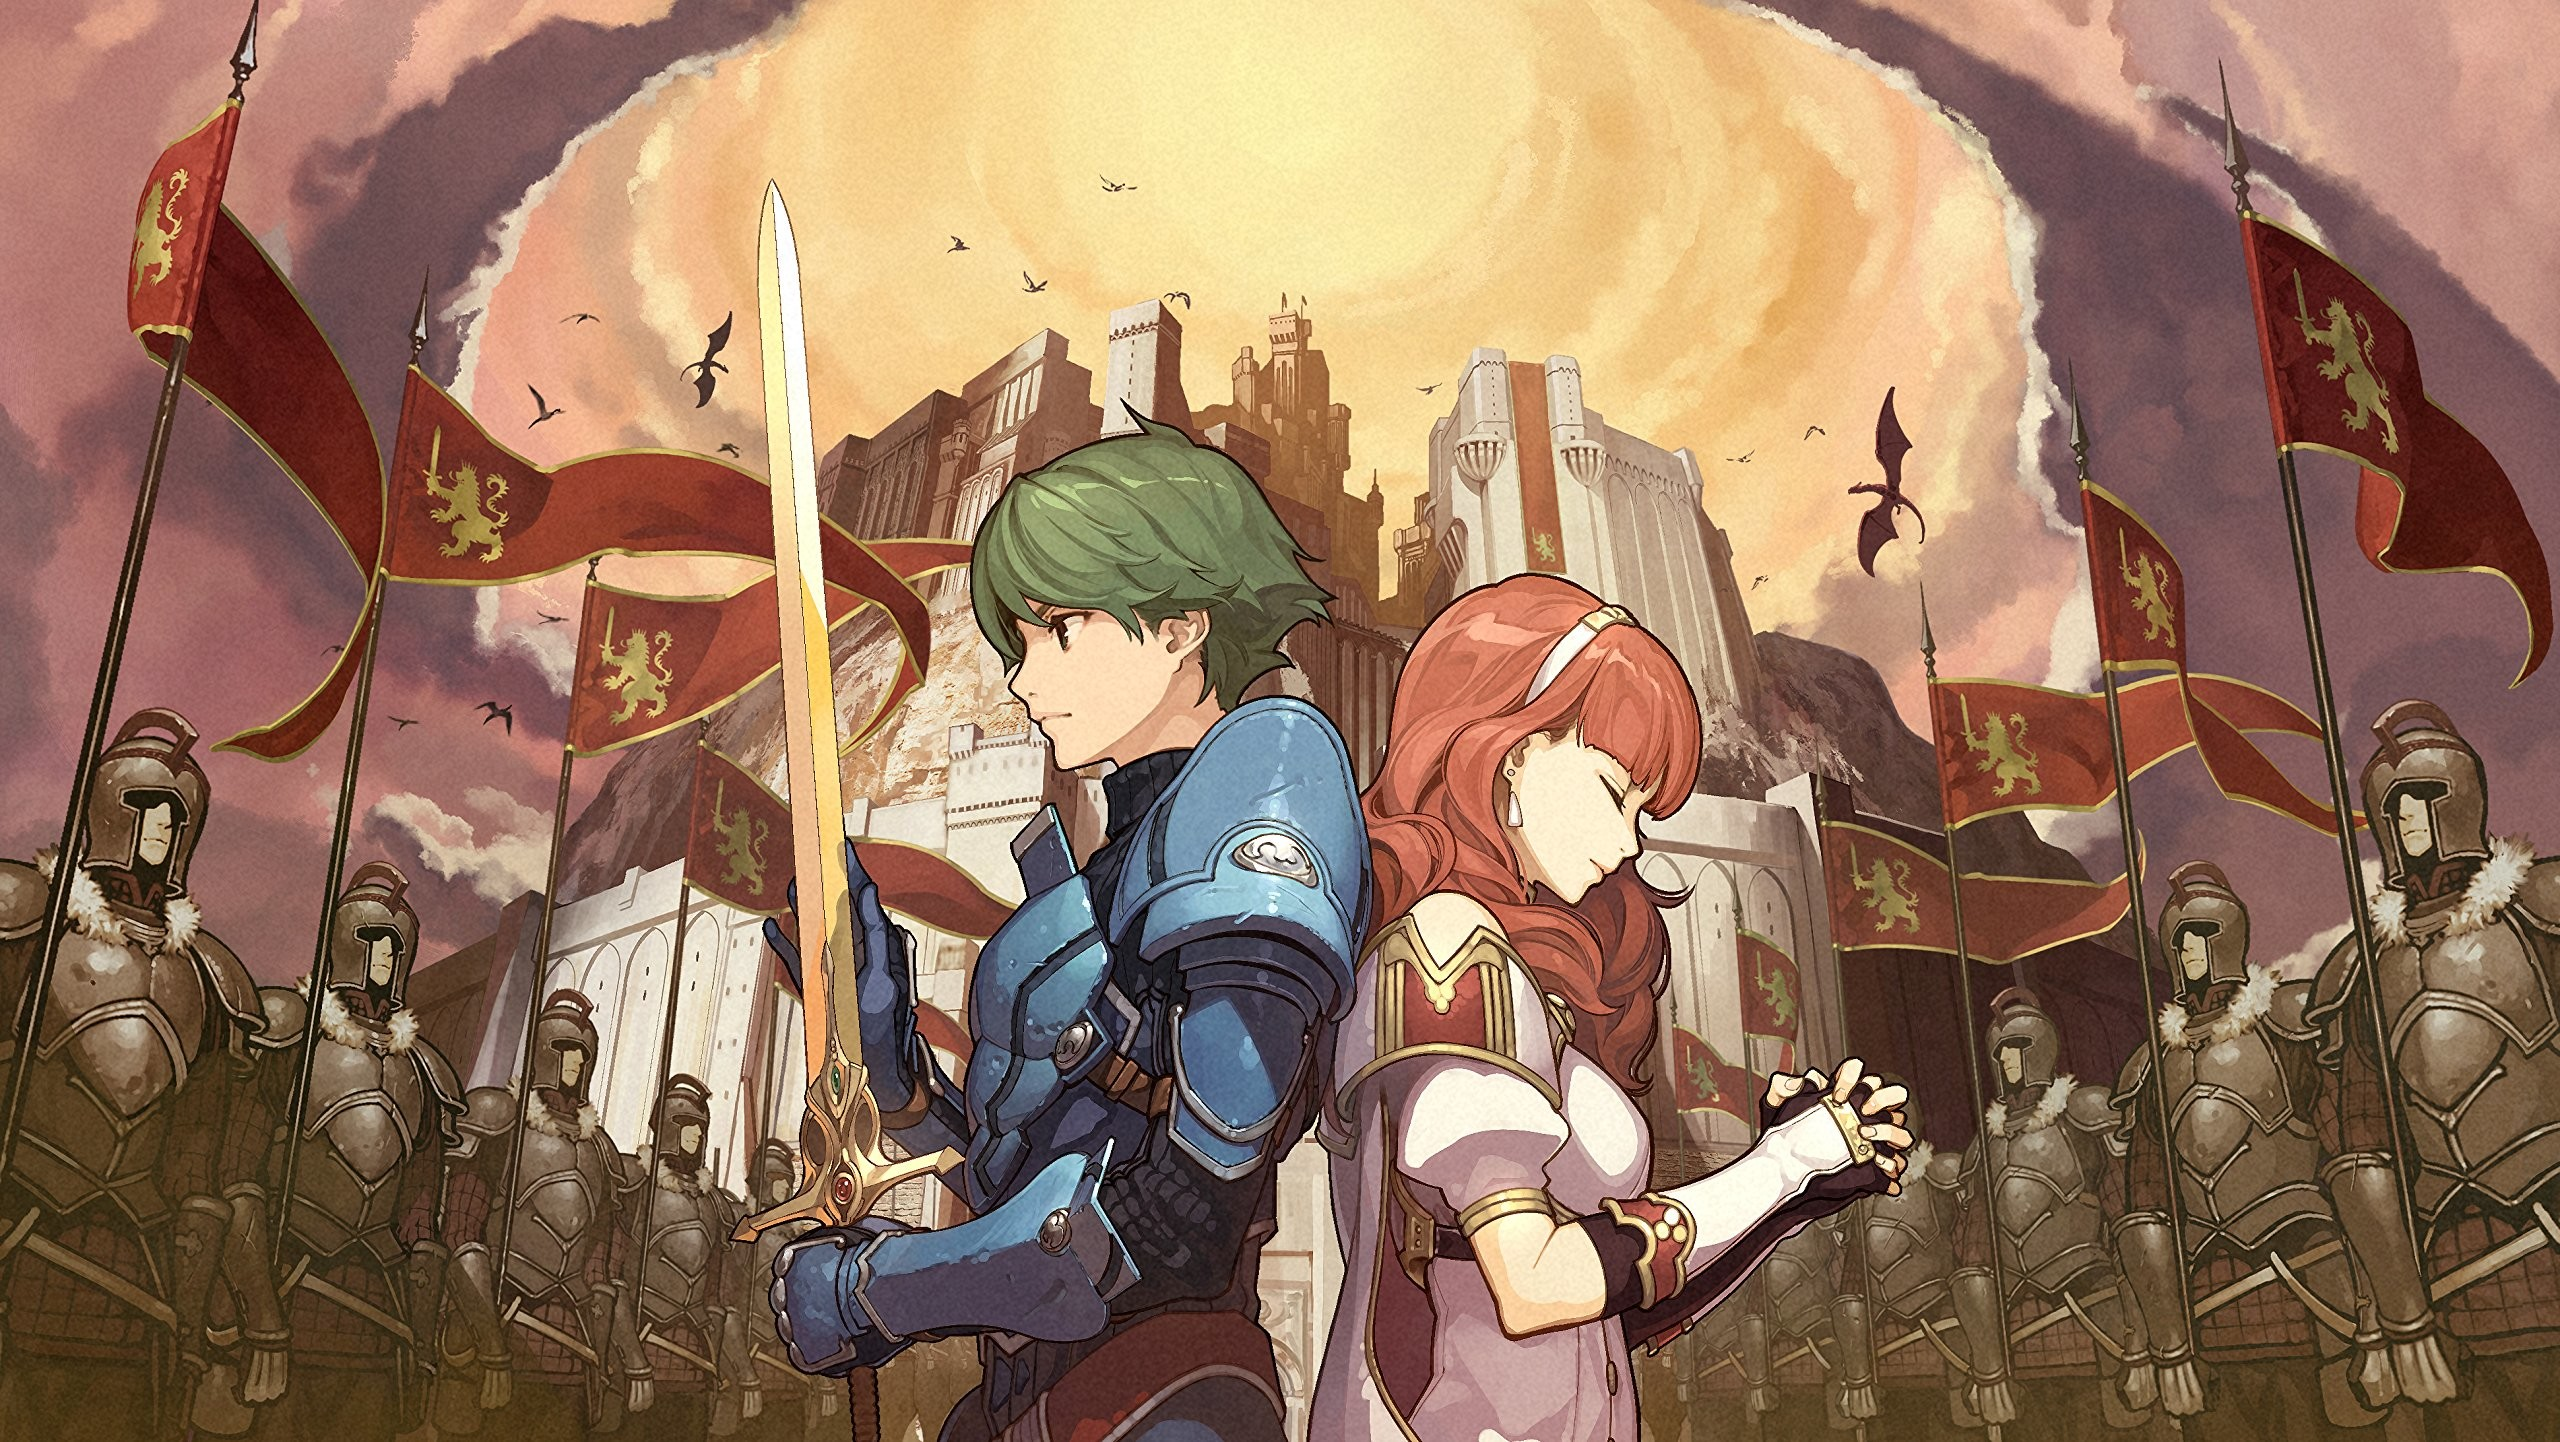 2560x1442 Fire Emblem Echoes: Shadows of Valentia - Nintendo 3DS Standard Edition